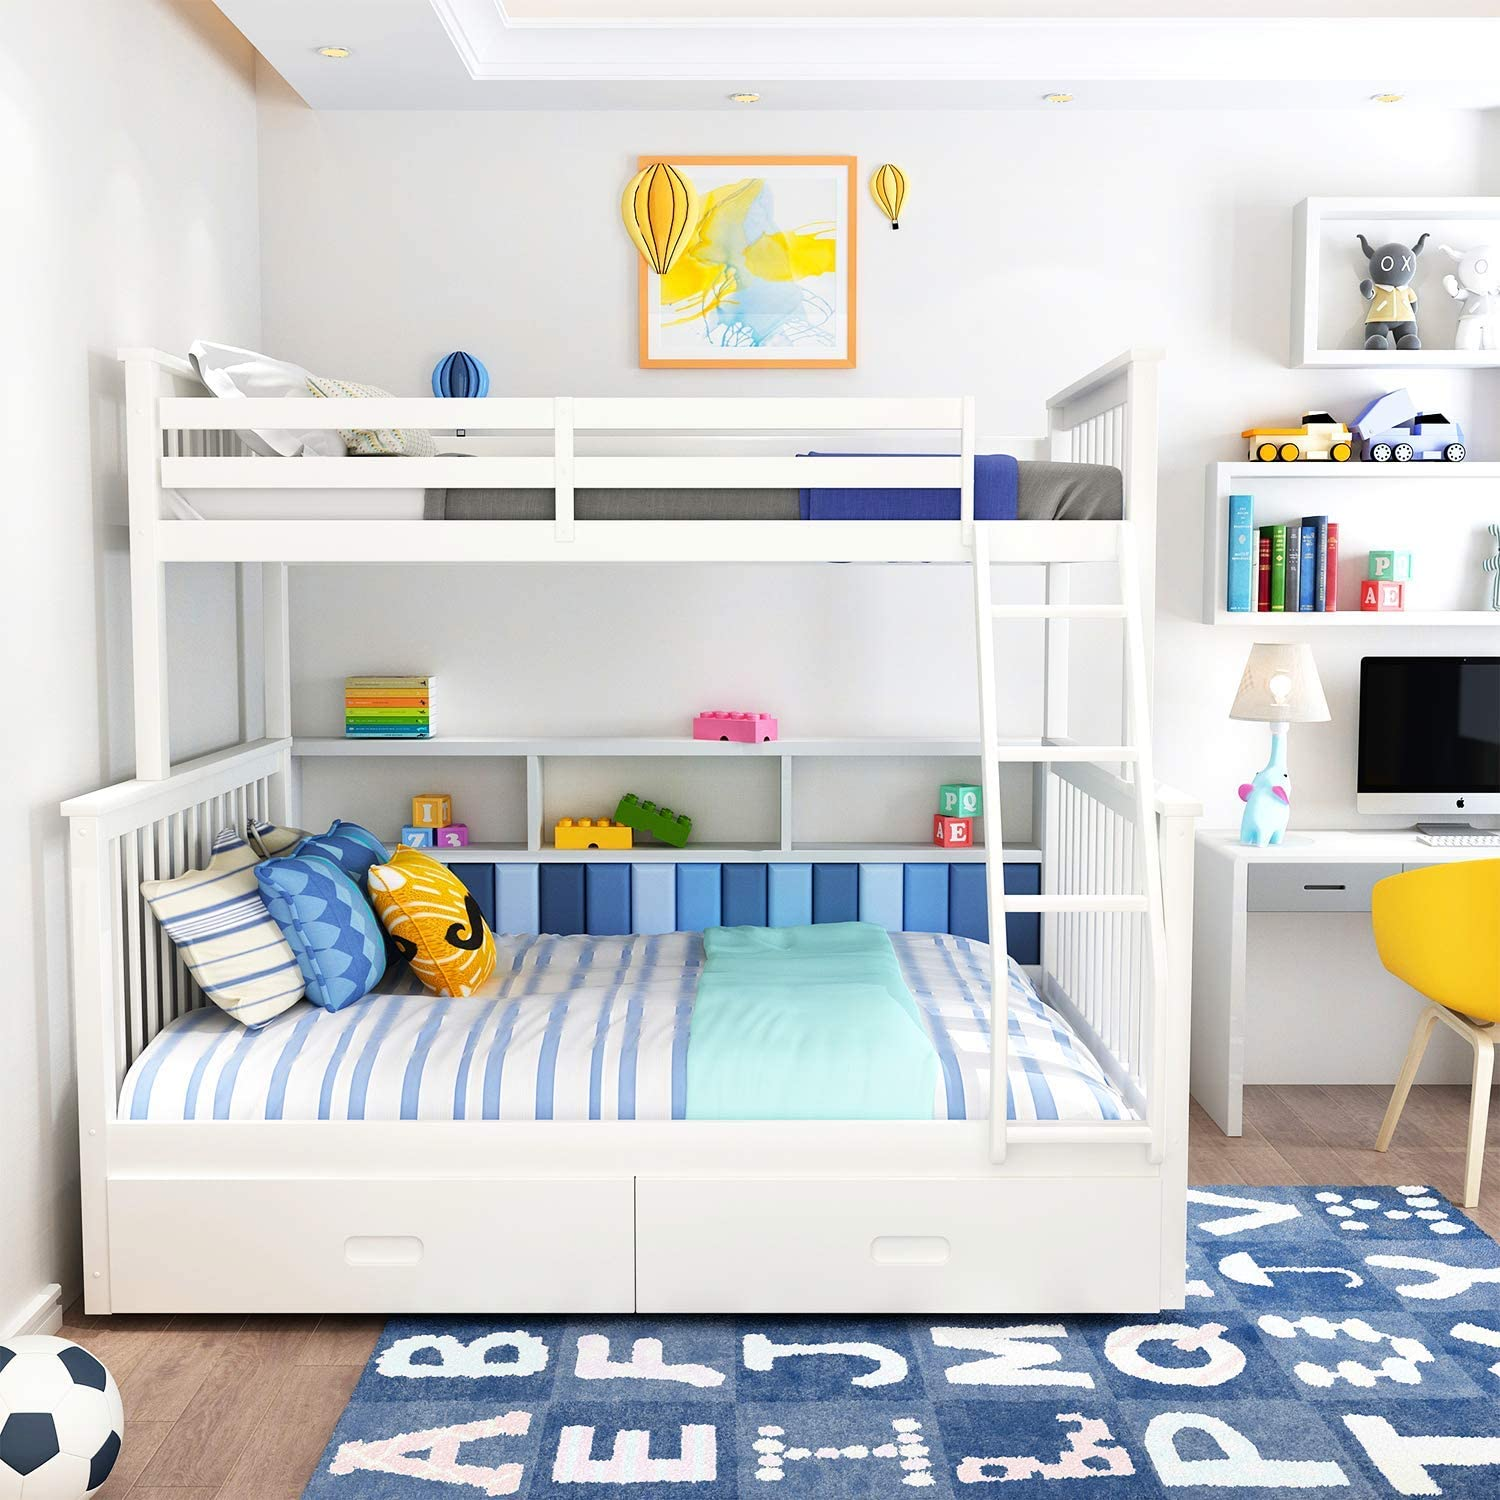 Recaceik Full Bunk Beds Bed with Two and Storage 年間定番 D Ladders 公式サイト